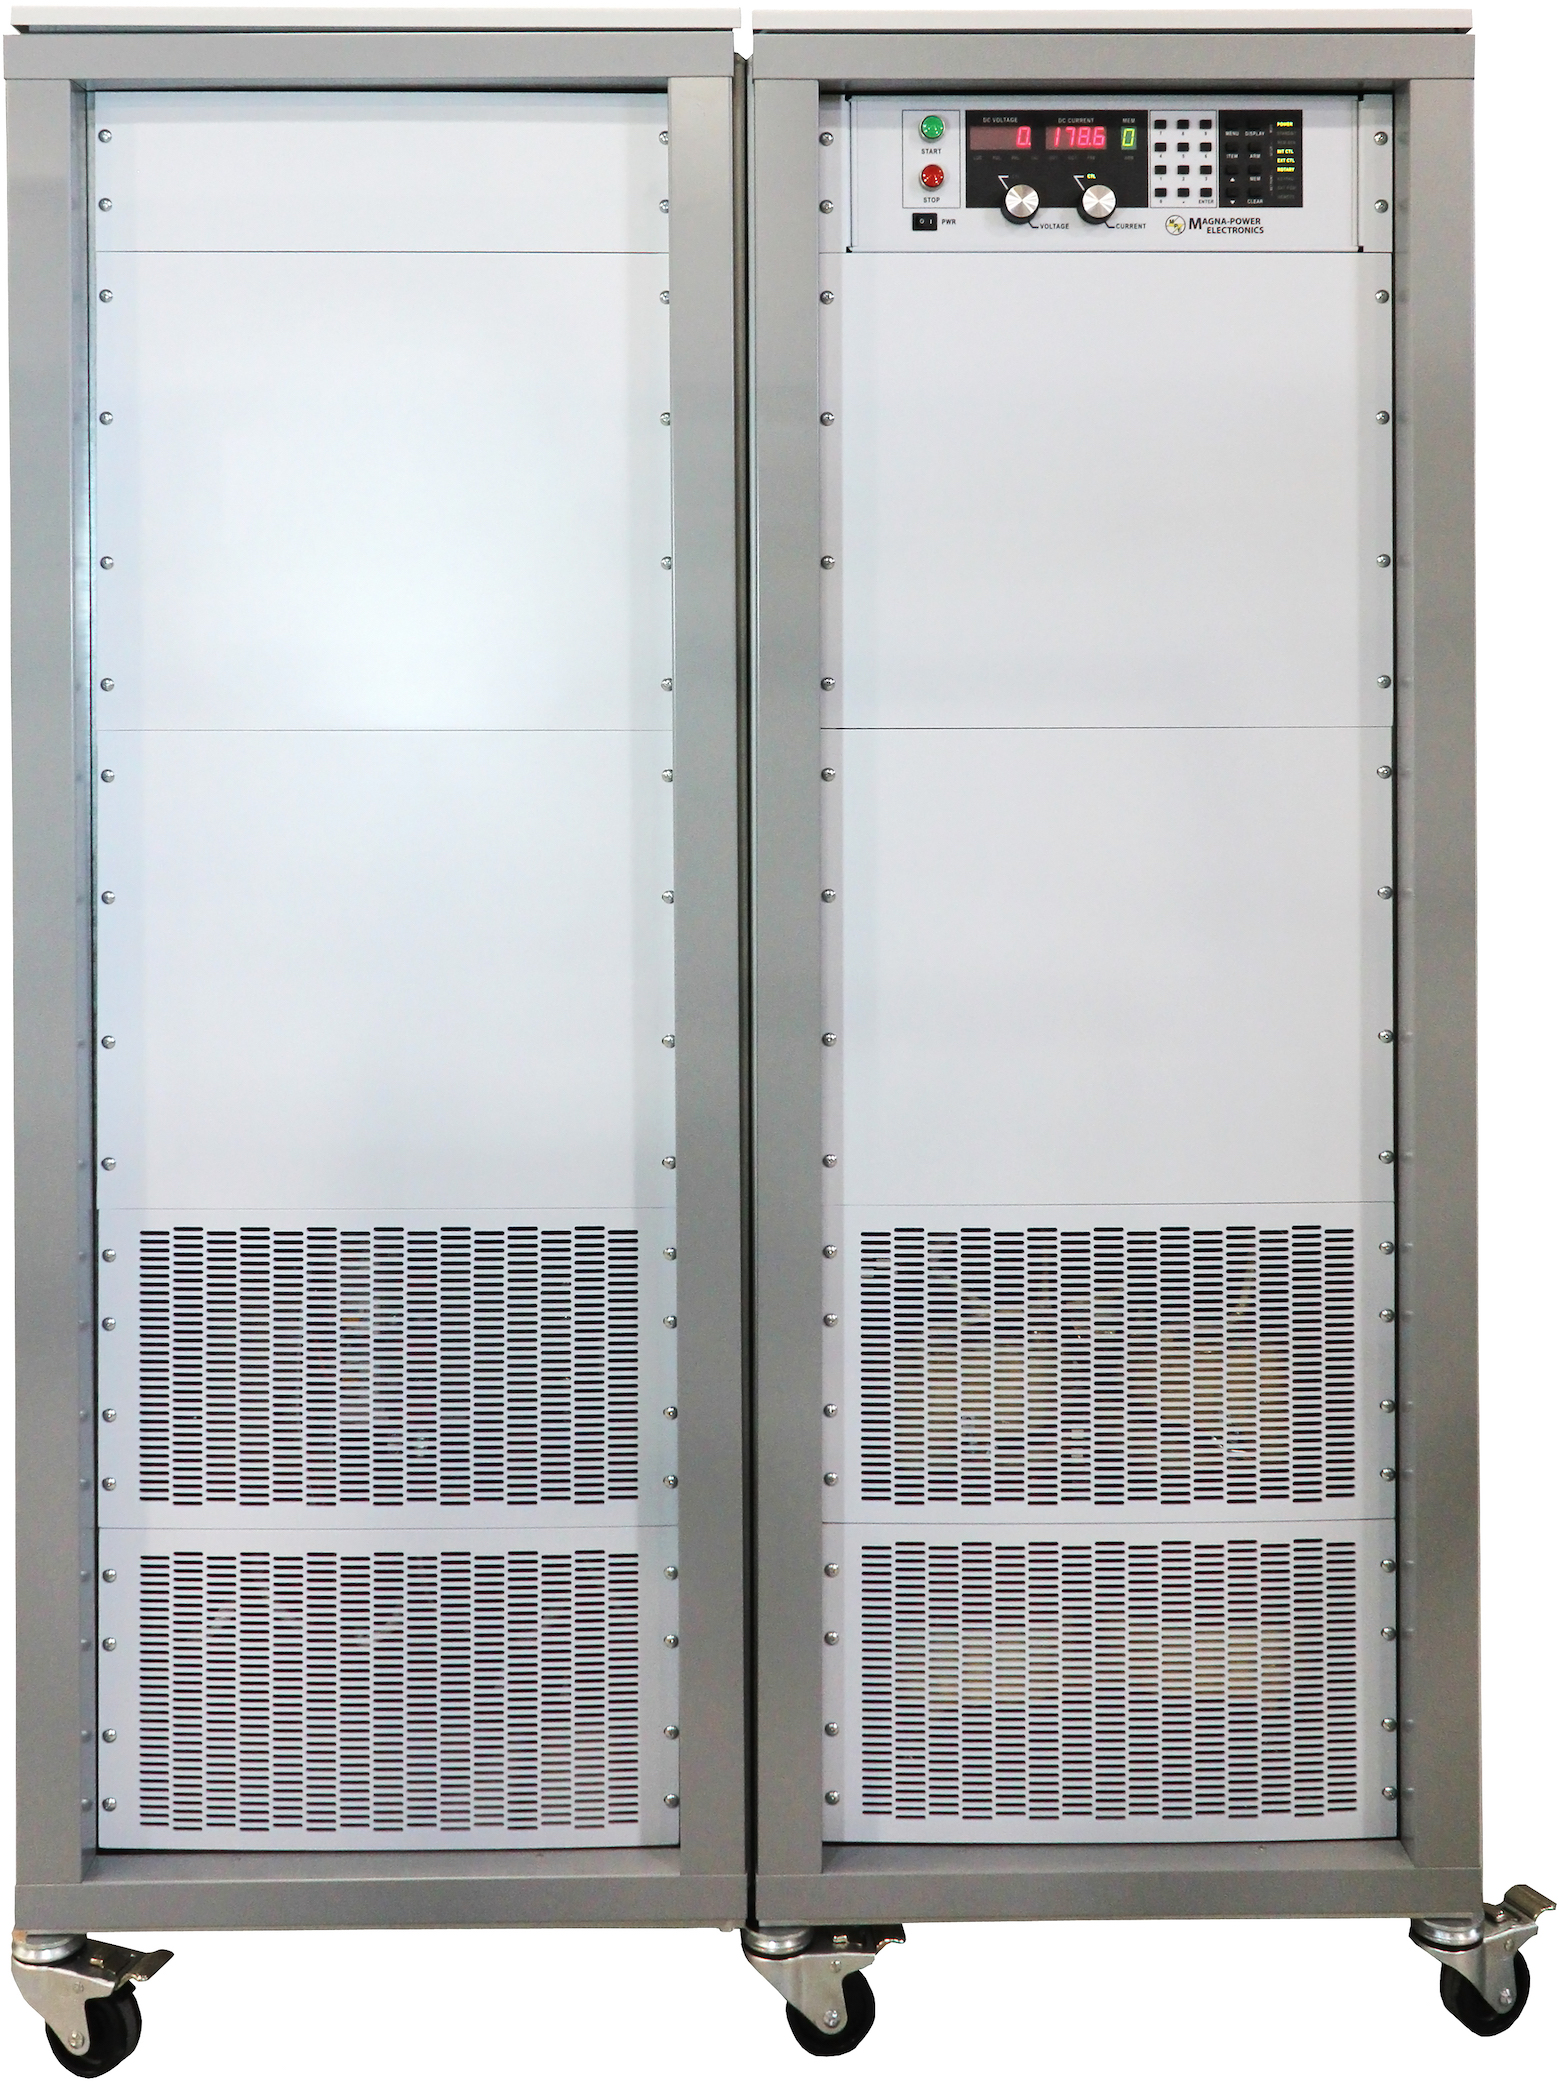 Magna Power Mt Vi Series Dc Programmable Supply Incelesatn Al Solutions Isolated With Virtual Remote Sense